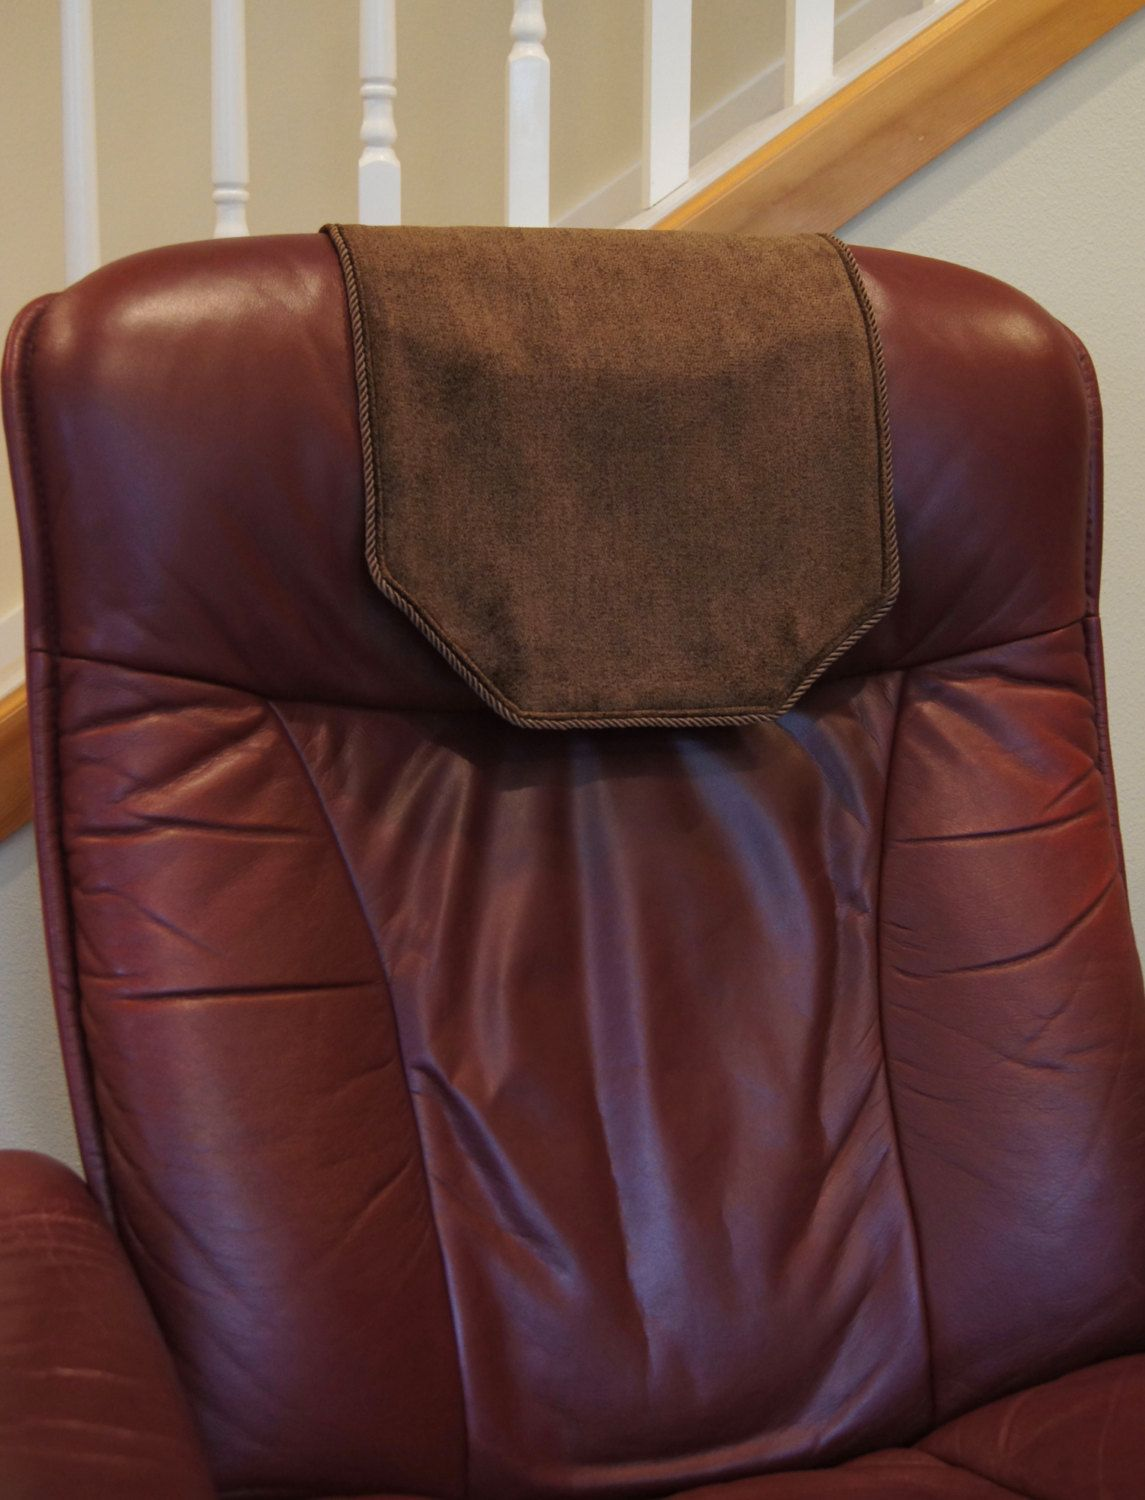 Recliner Chair Headrest Cover Chocolate Brown by